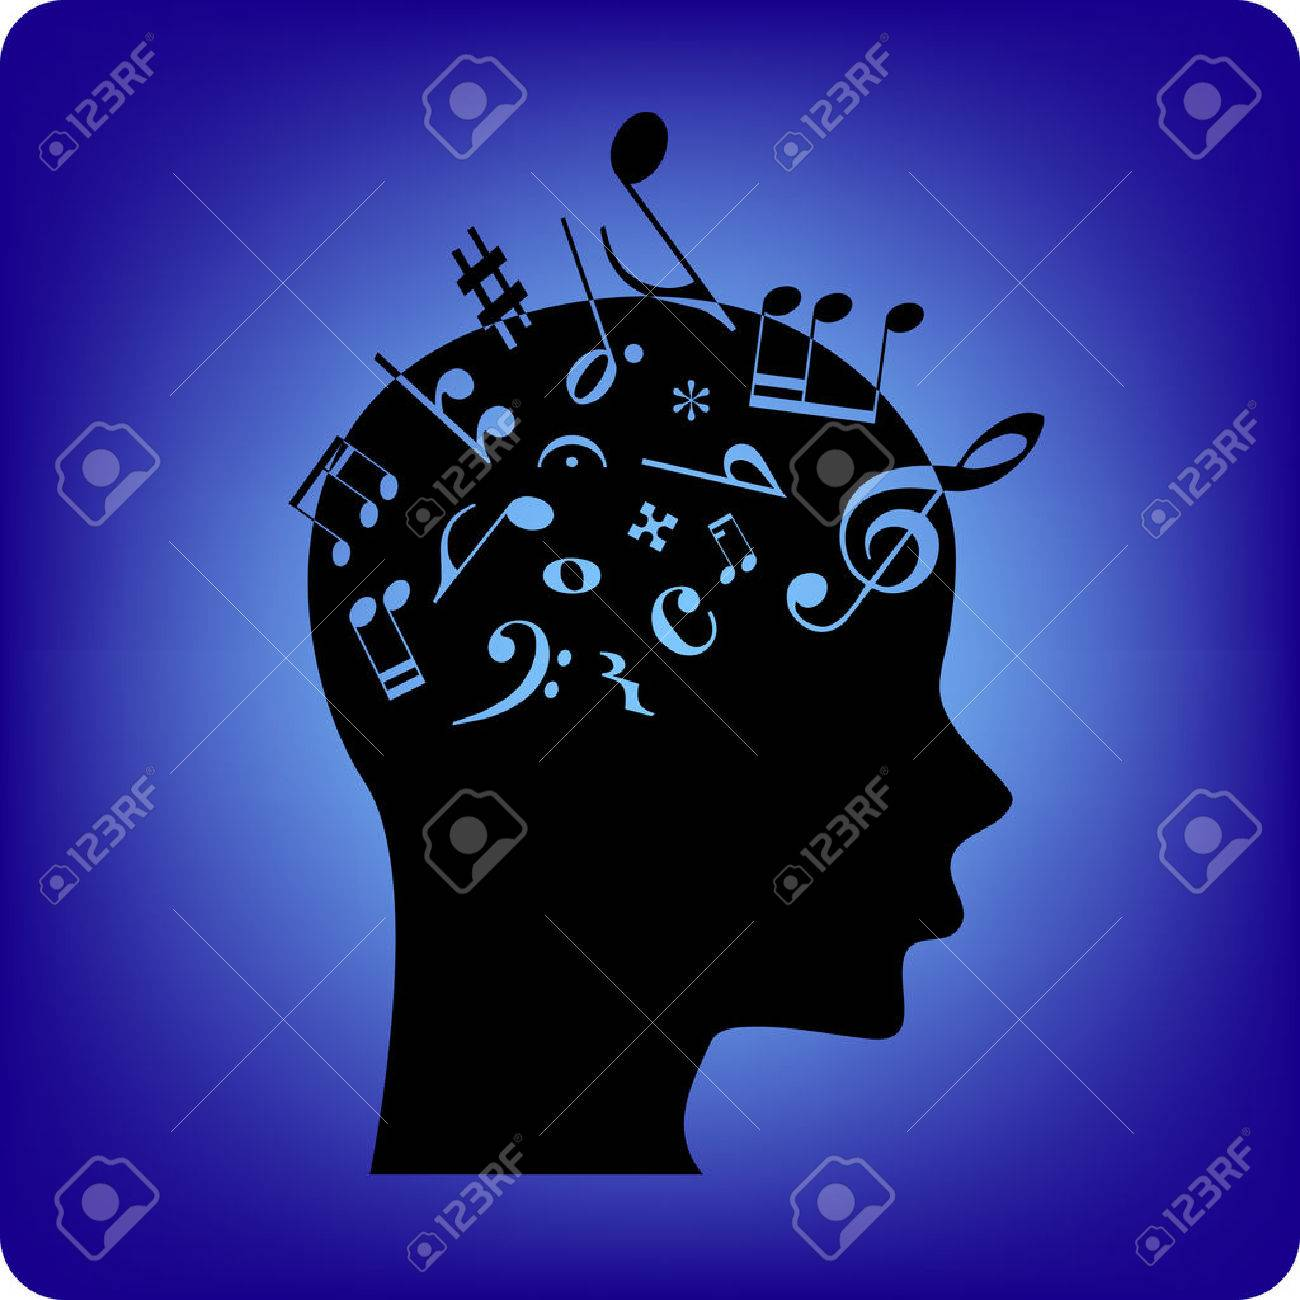 Musical notes spilling out from the brain  Musical notes are